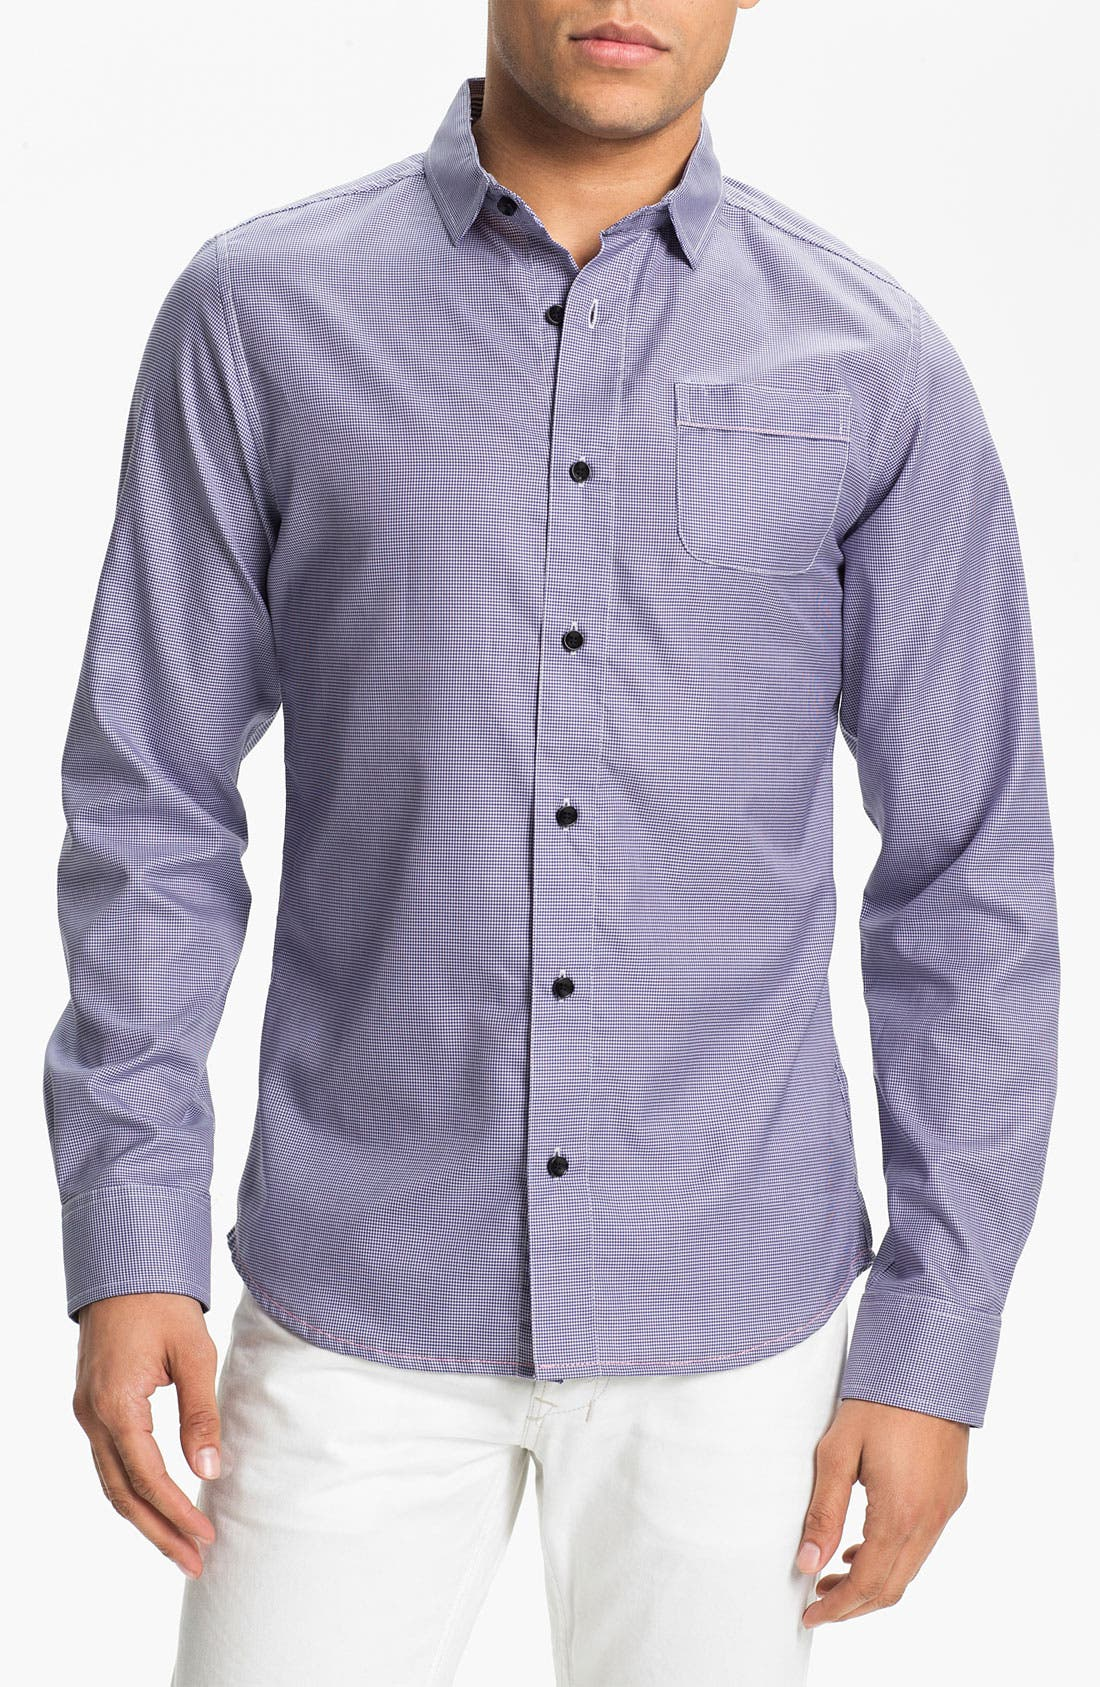 Alternate Image 1 Selected - Descendants of Thieves Micro Houndstooth Shirt